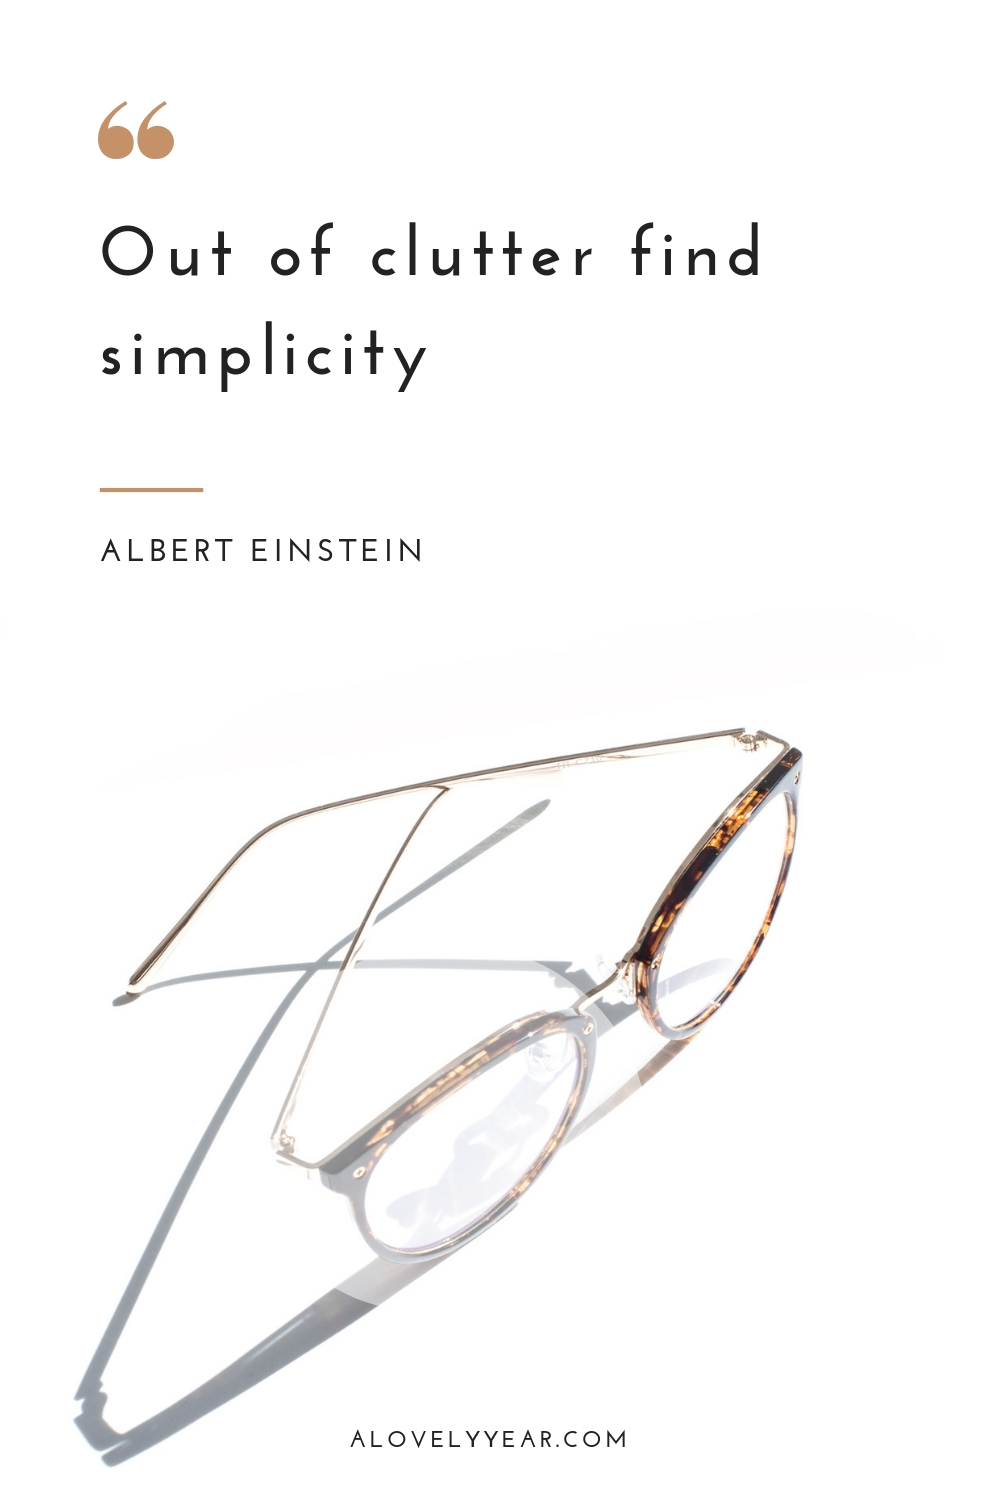 Decluttering quotes to inspire you into action - Out of clutter find simplicity